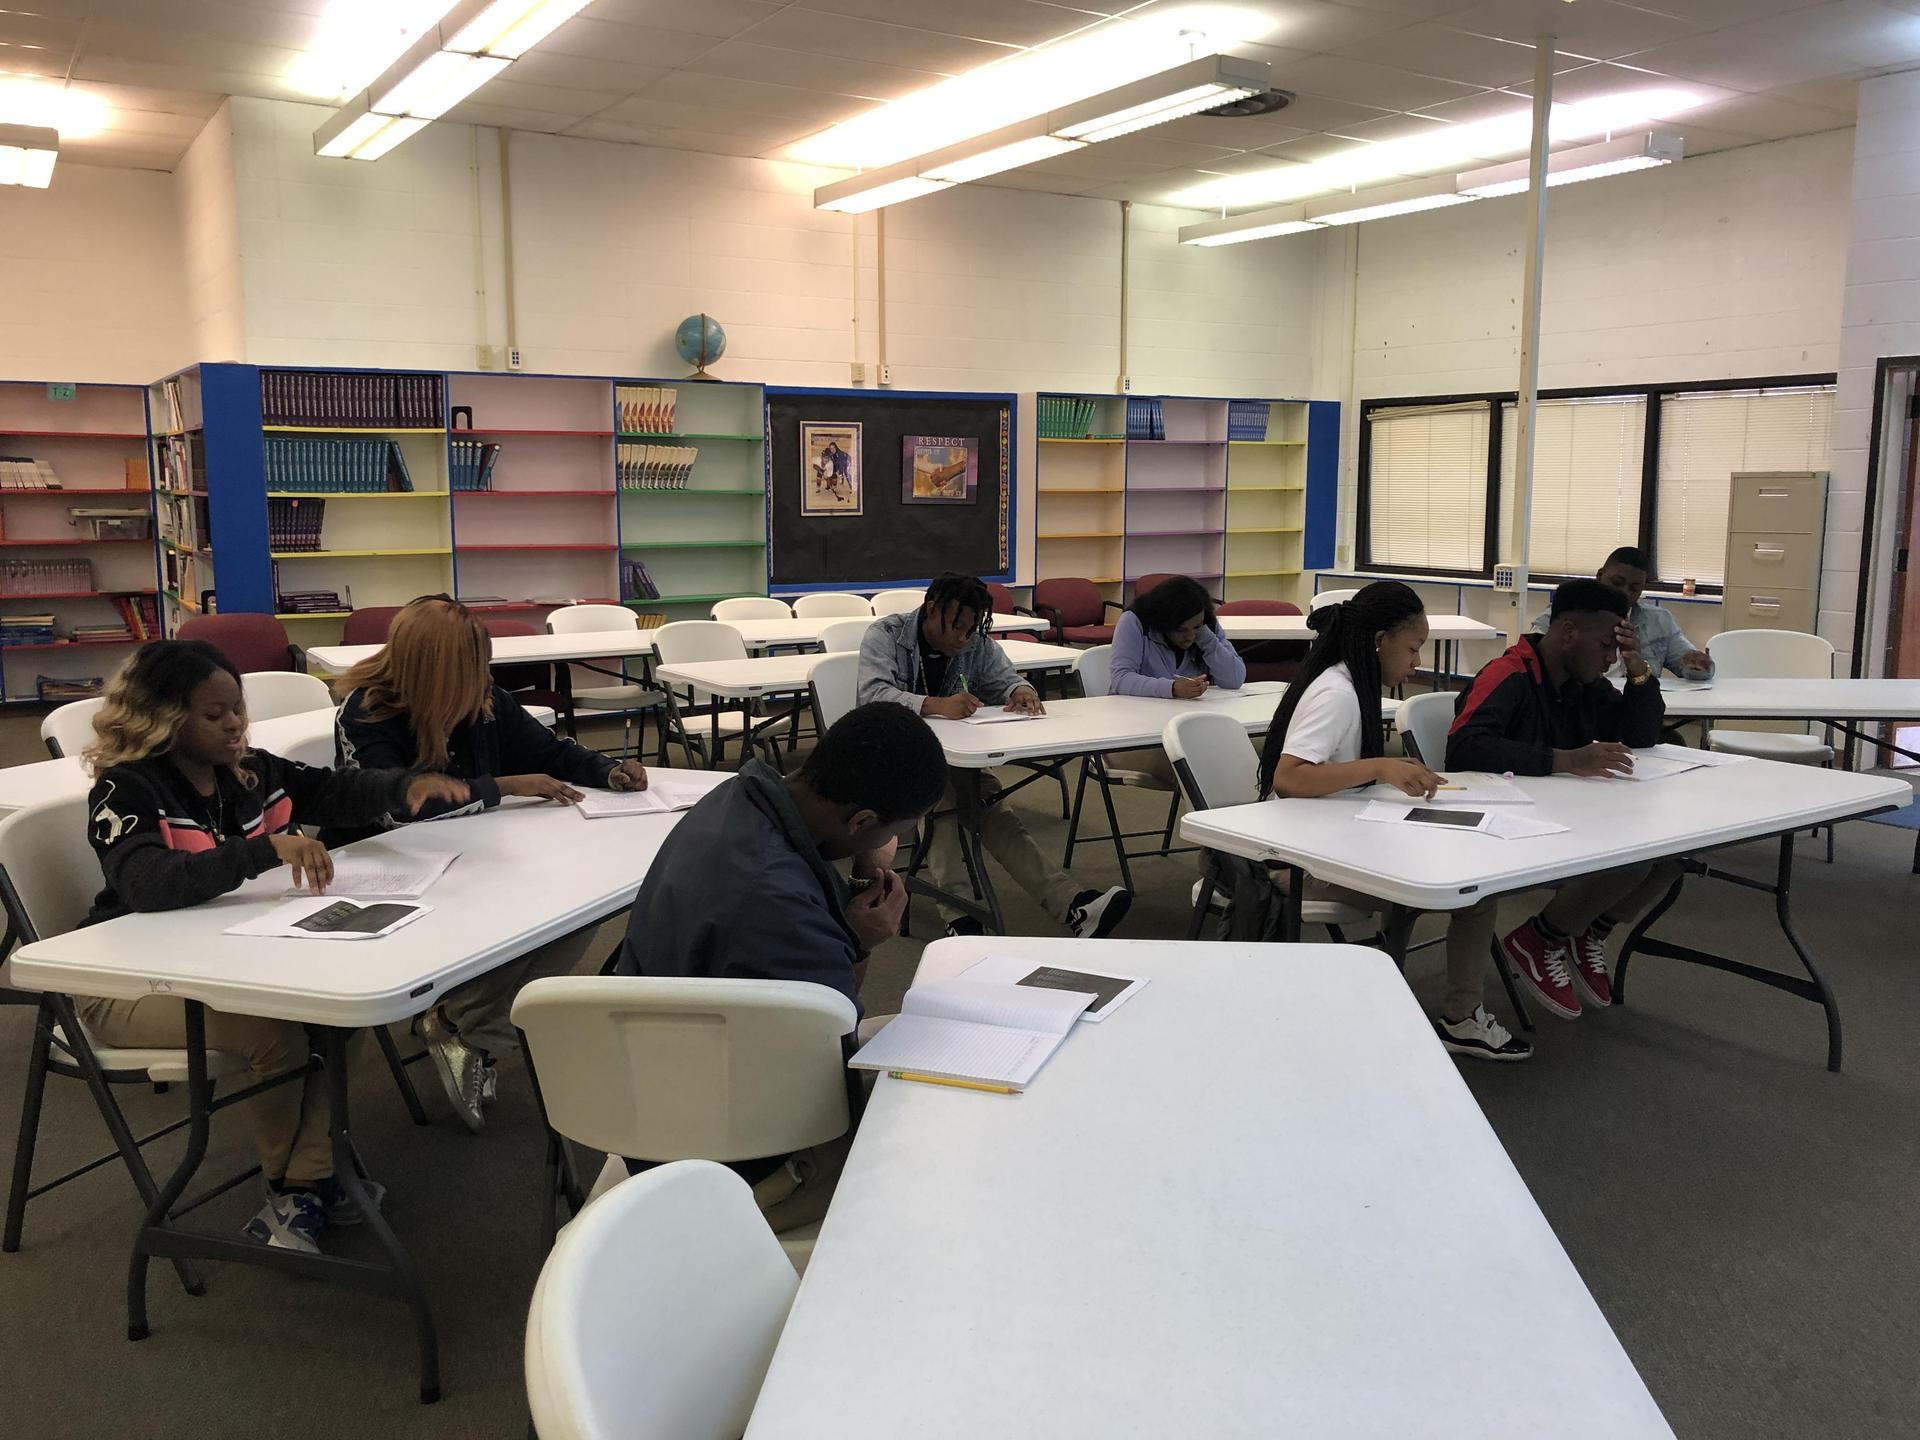 Students engaged in writing